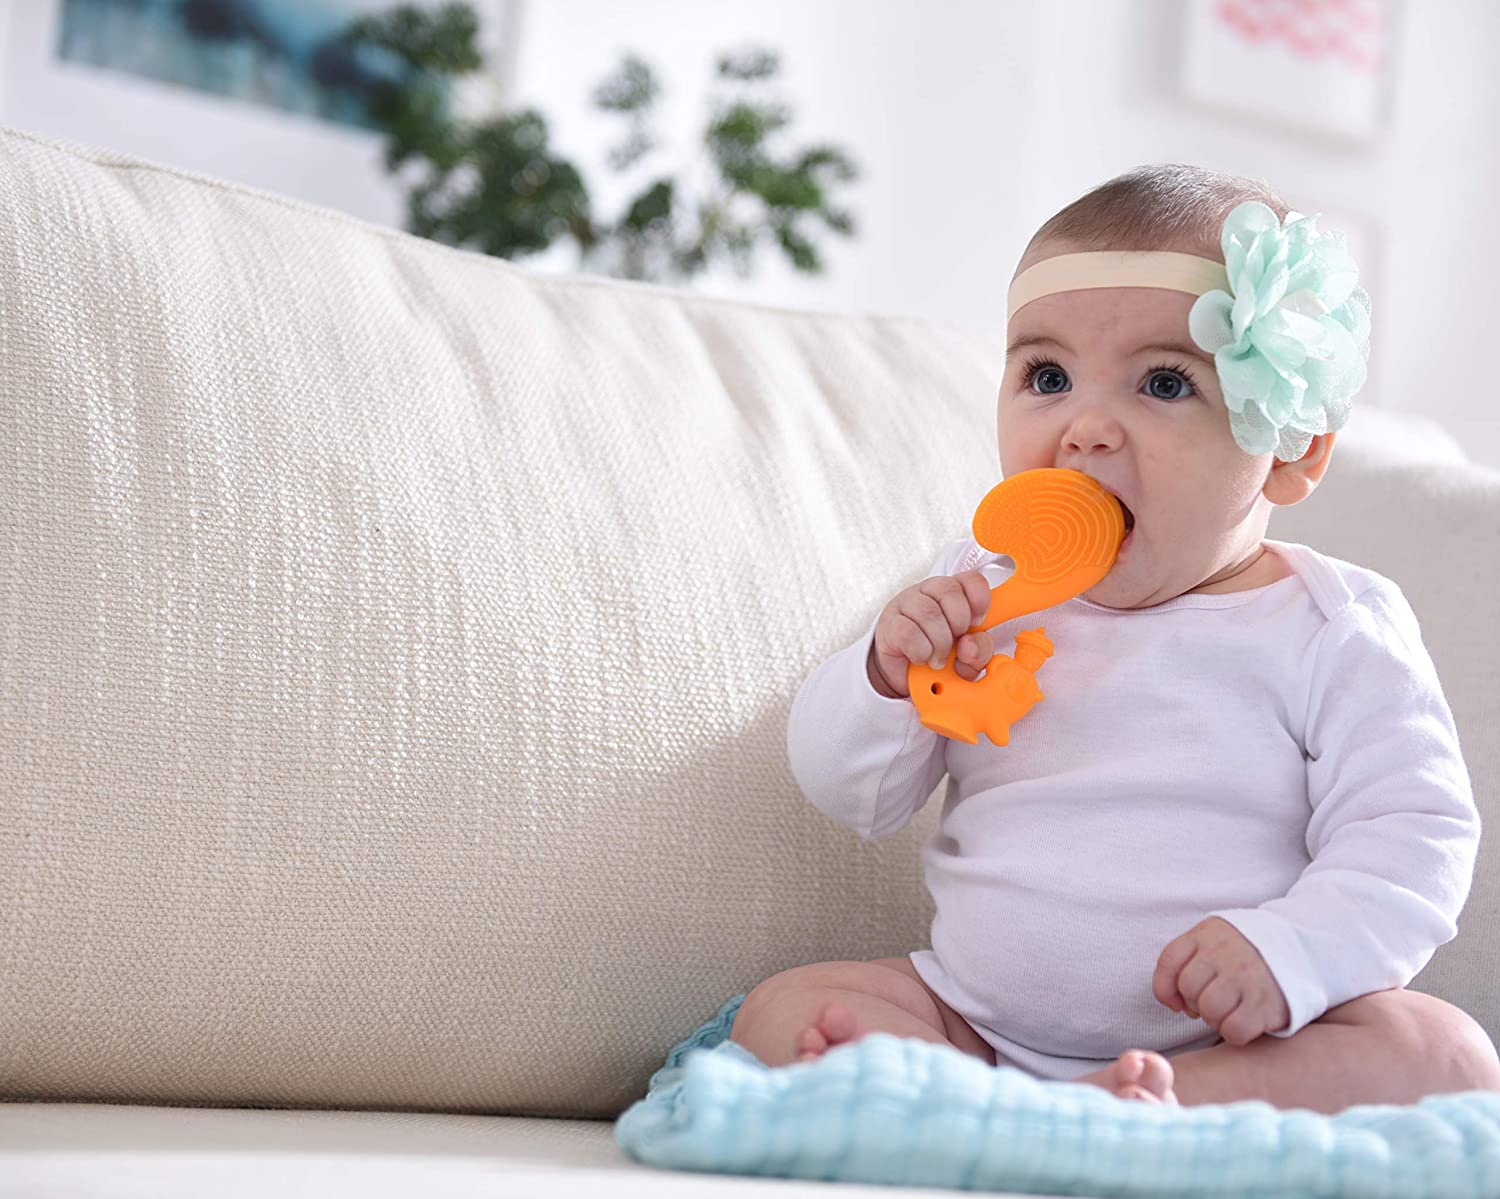 Firm Silicone with Textures to Massage Gum for Babies Already Have a Few Teeth,Orange Mombella Scrat The Squirrel Silicone teether Toy